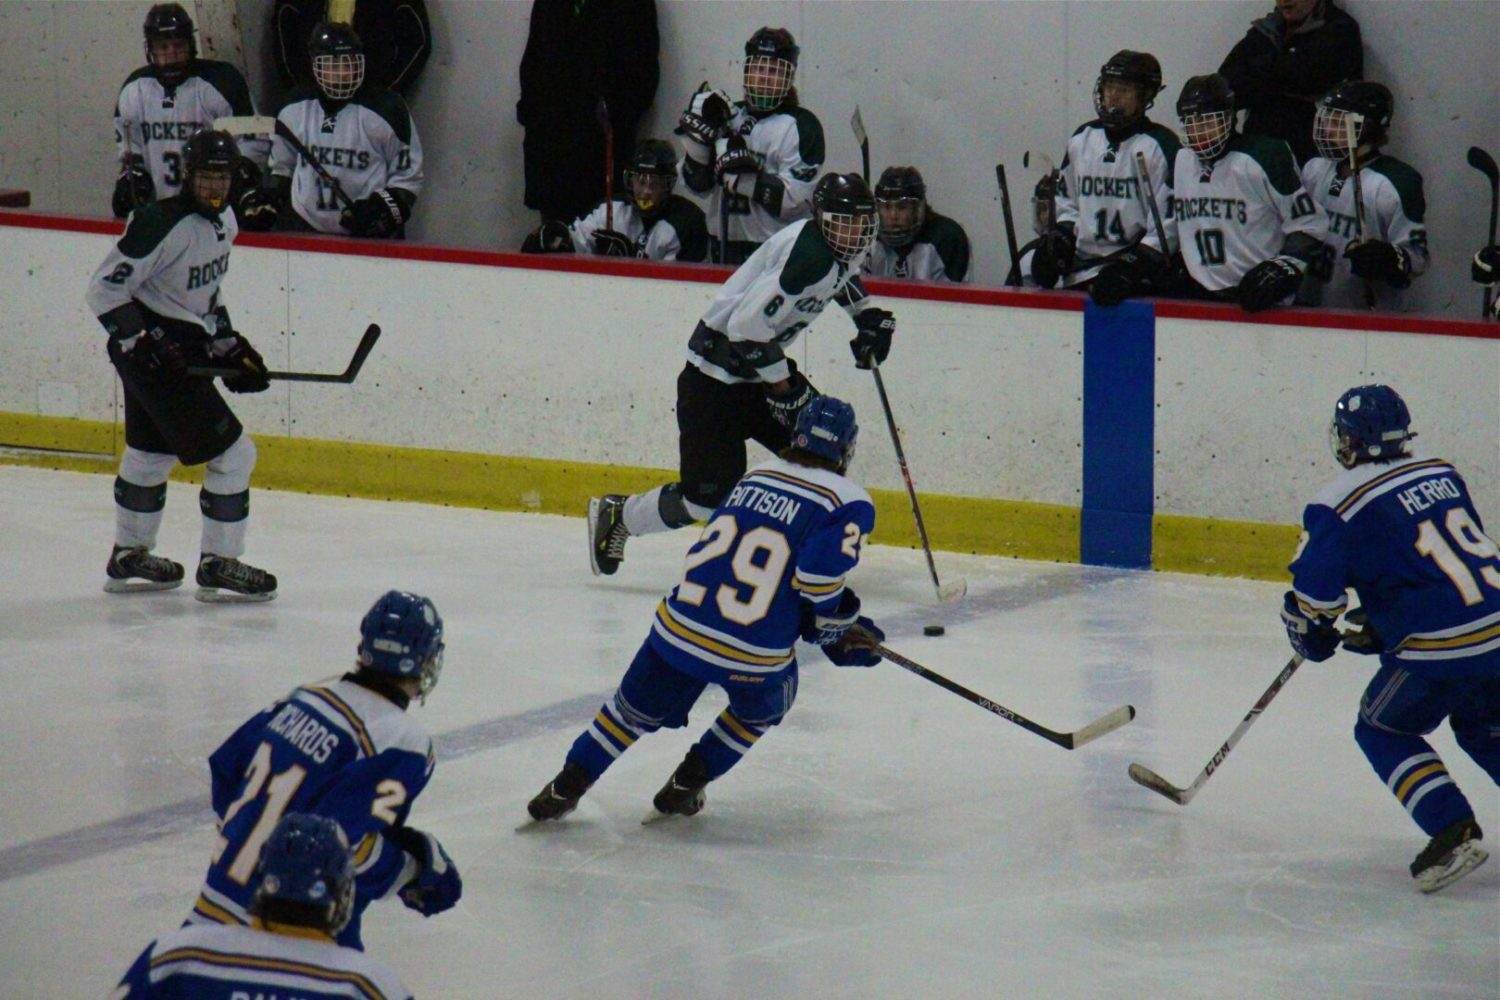 Derek Mines scores two goals for Reeths-Puffer in hockey loss to Grand Rapids Catholic Central [VIDEO]